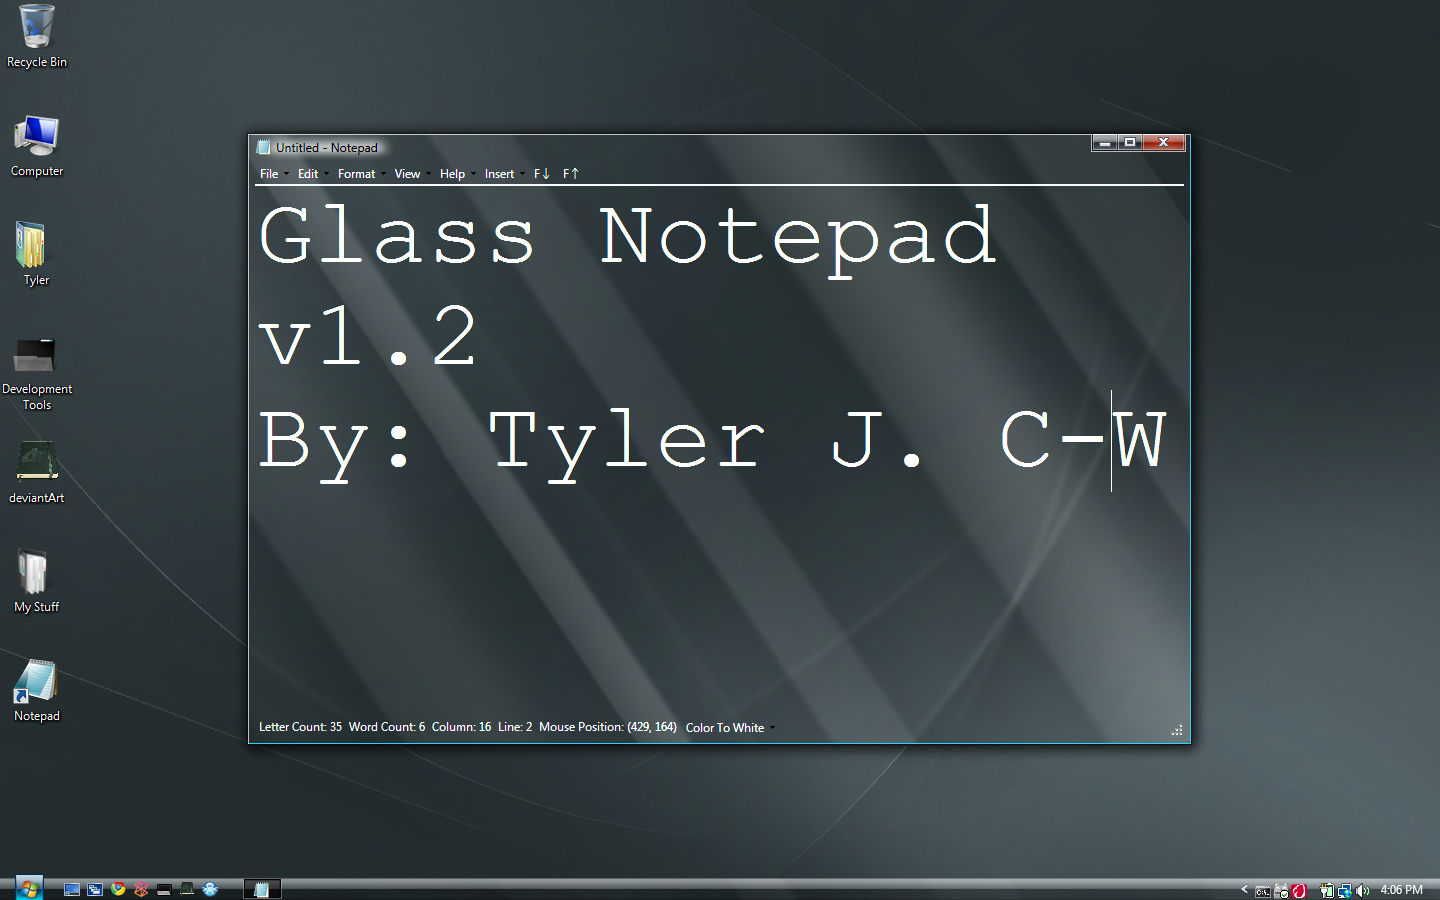 Glass Notepad